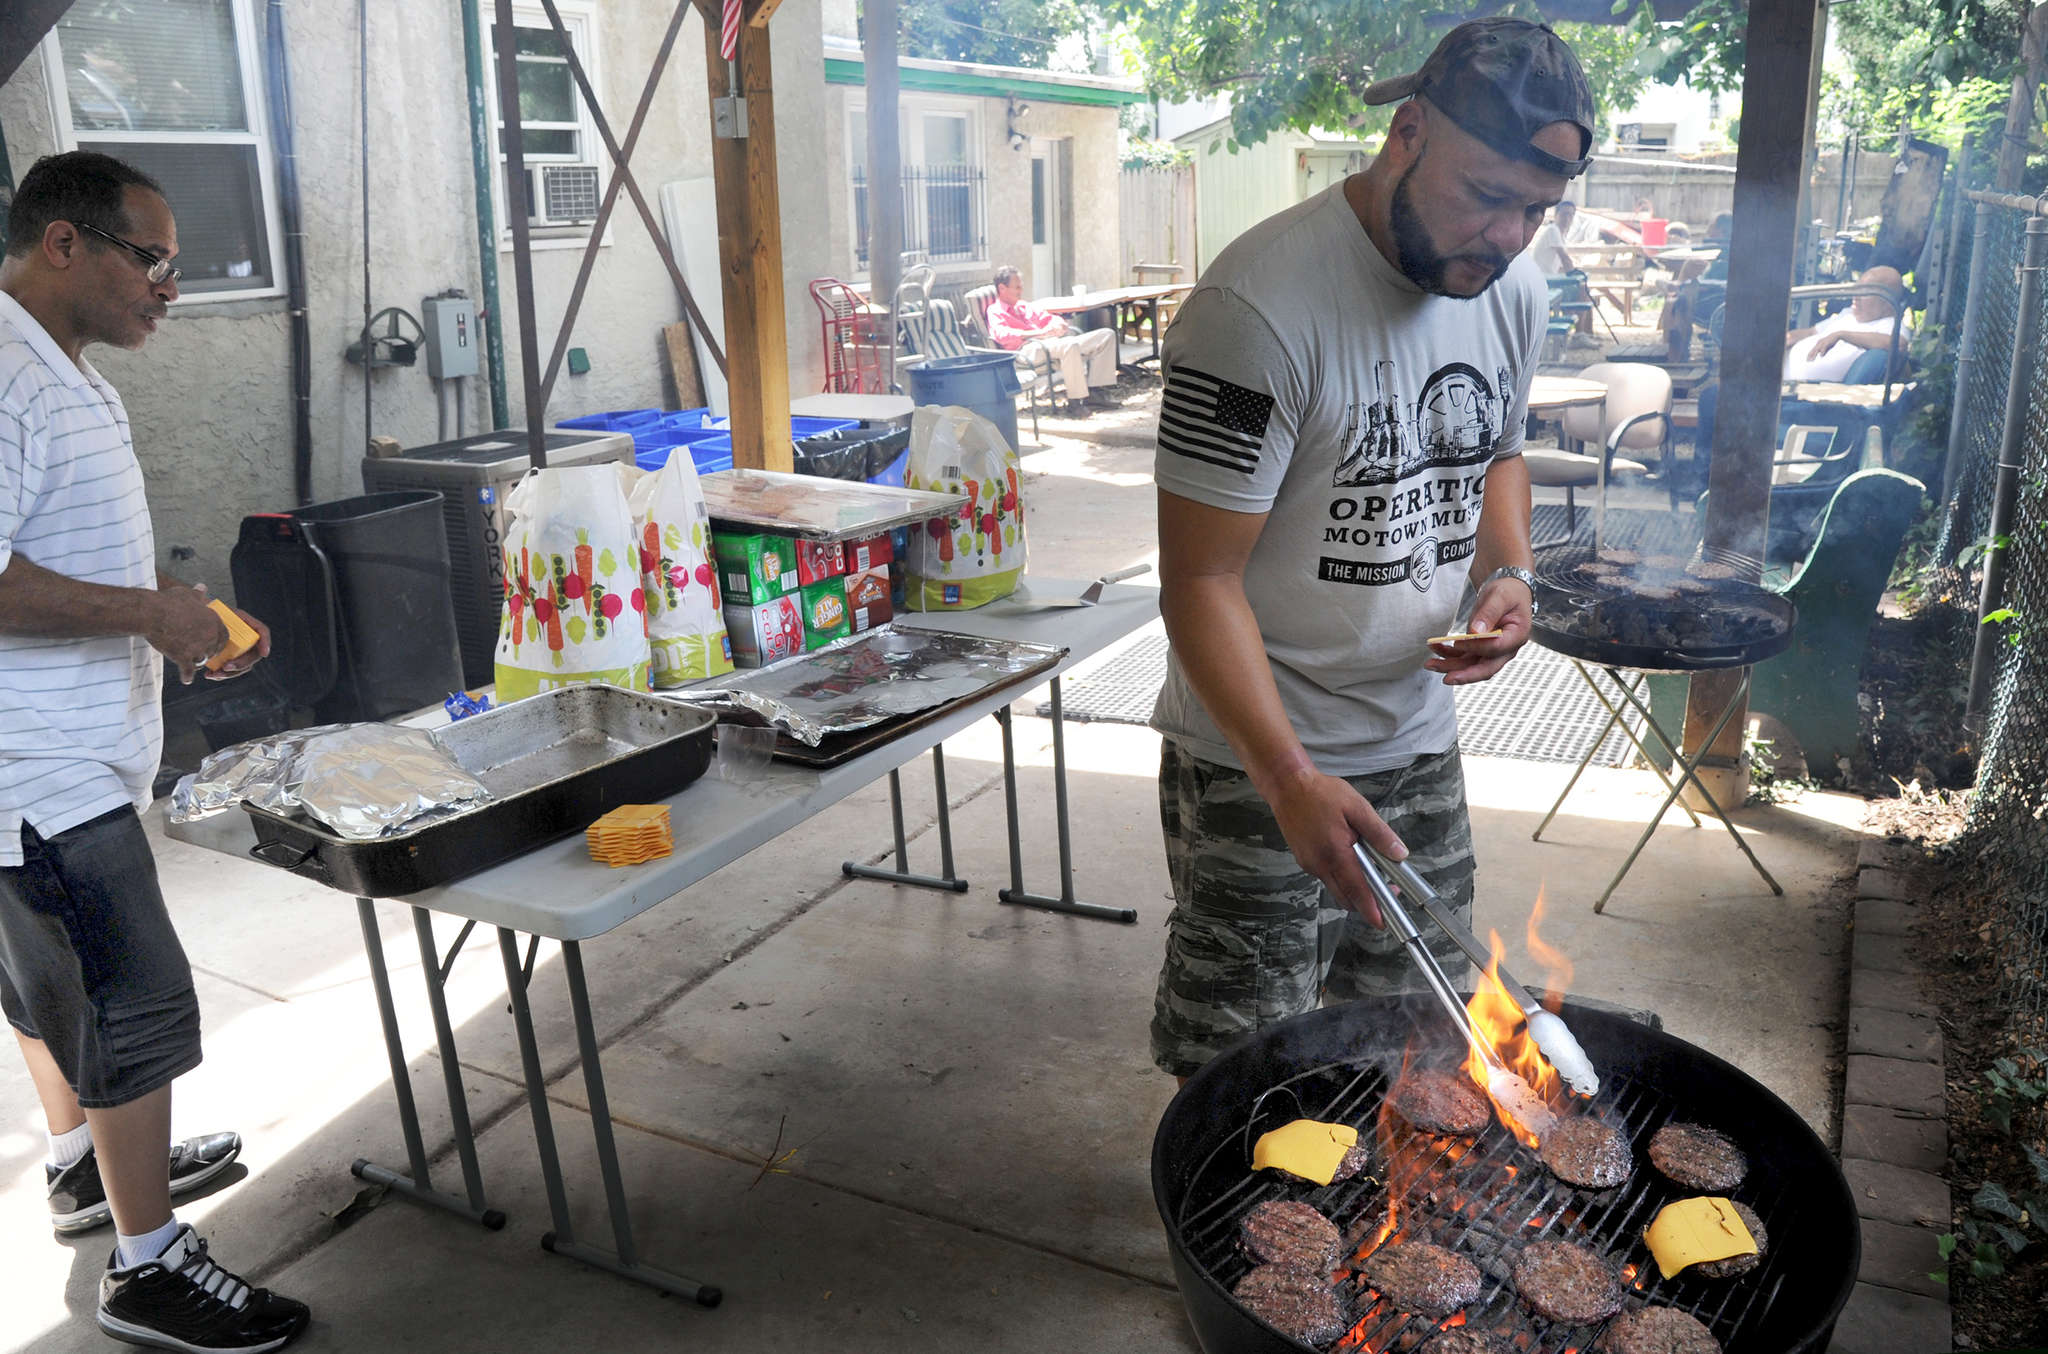 Jose Martinez, executive director of the Veterans Group, grills burgers at a facility for homeless vets in Powelton Village. He also works for a nonprofit that organizes community projects.